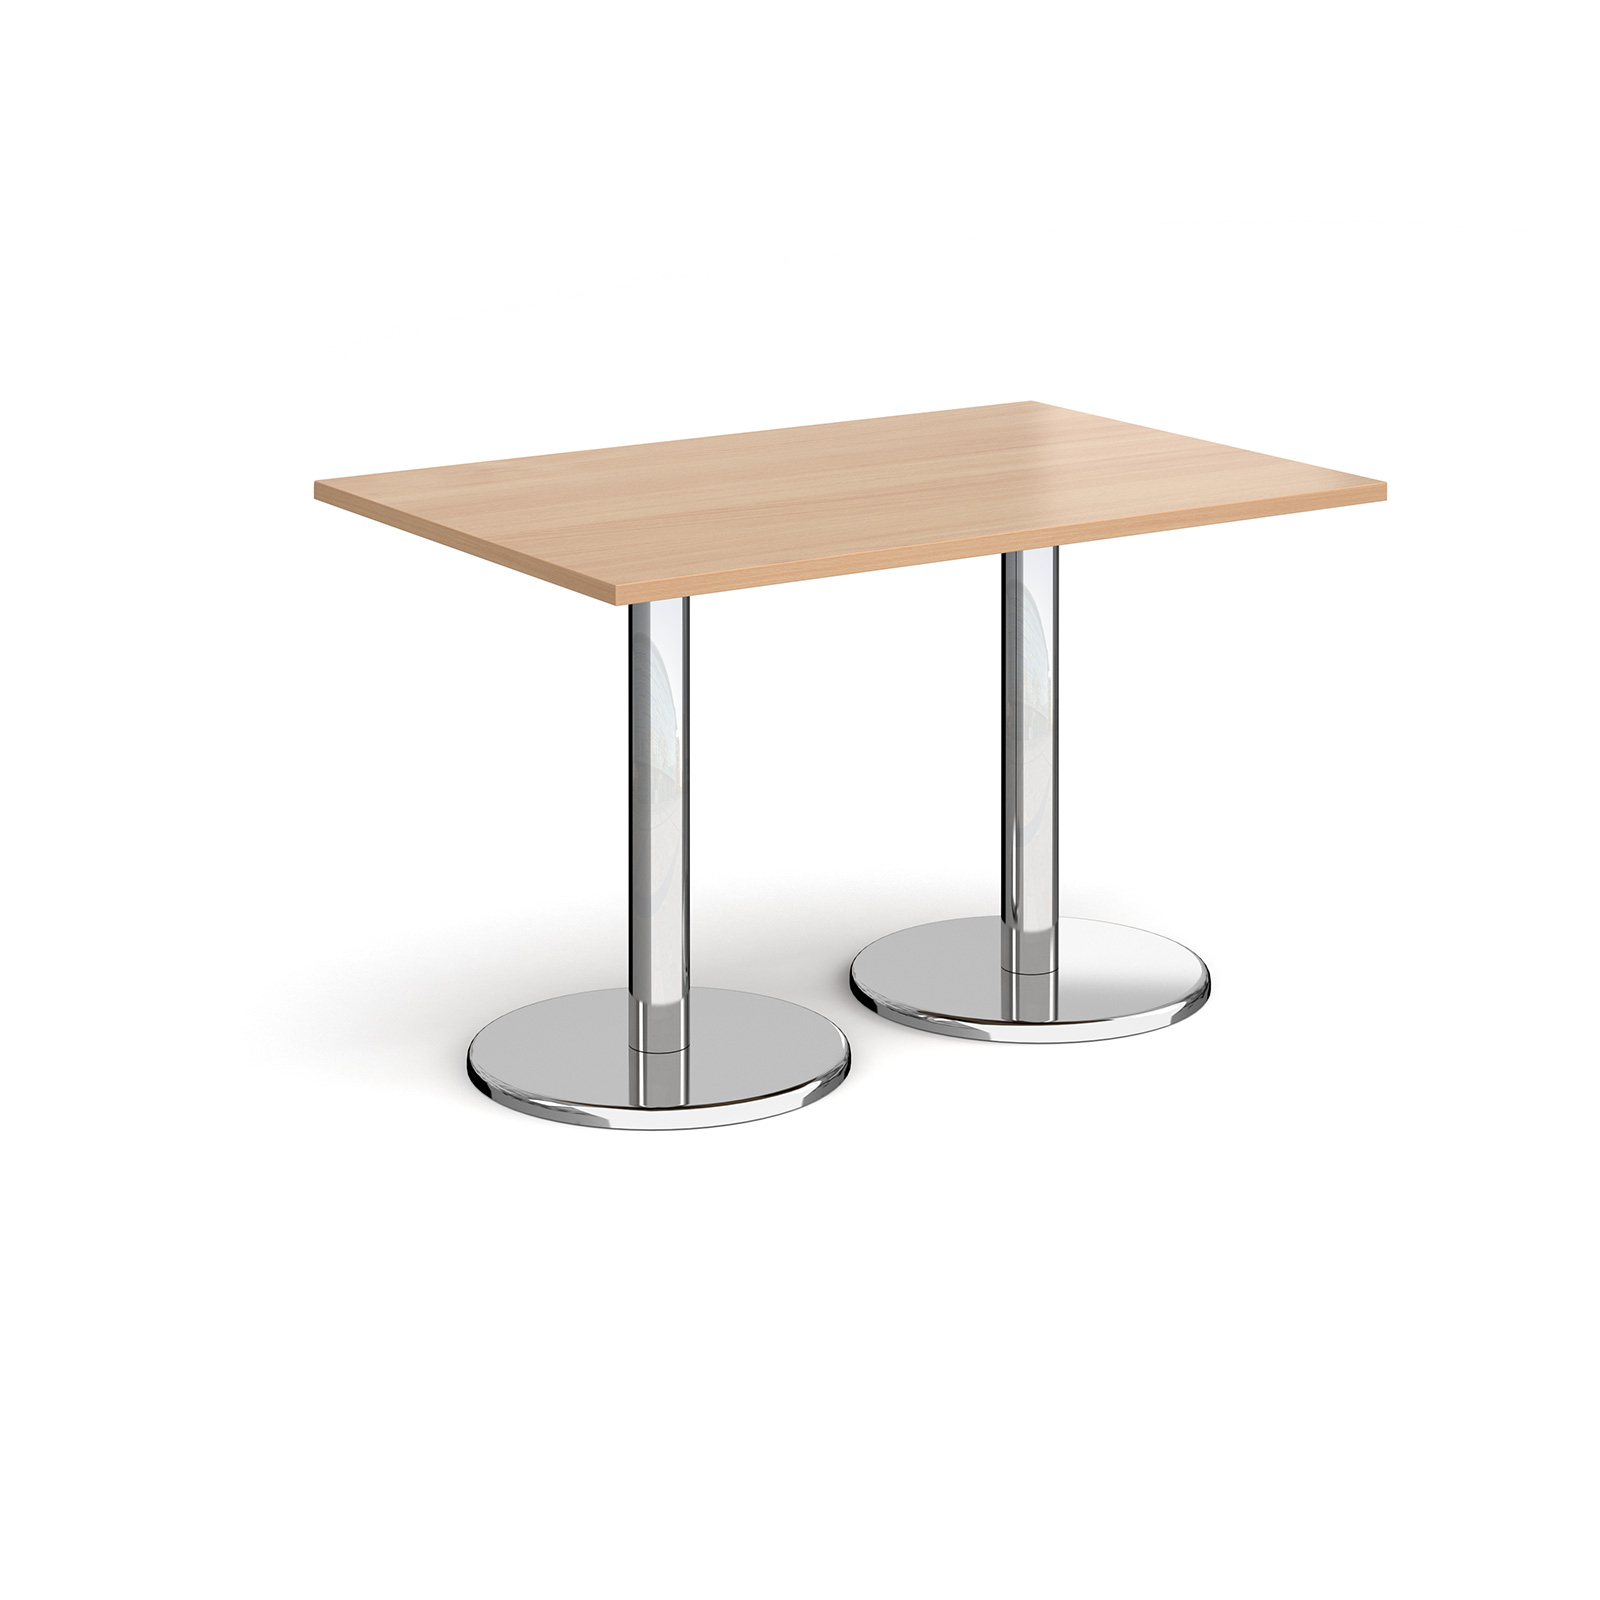 Canteen / Dining Pisa rectangular dining table with round bases